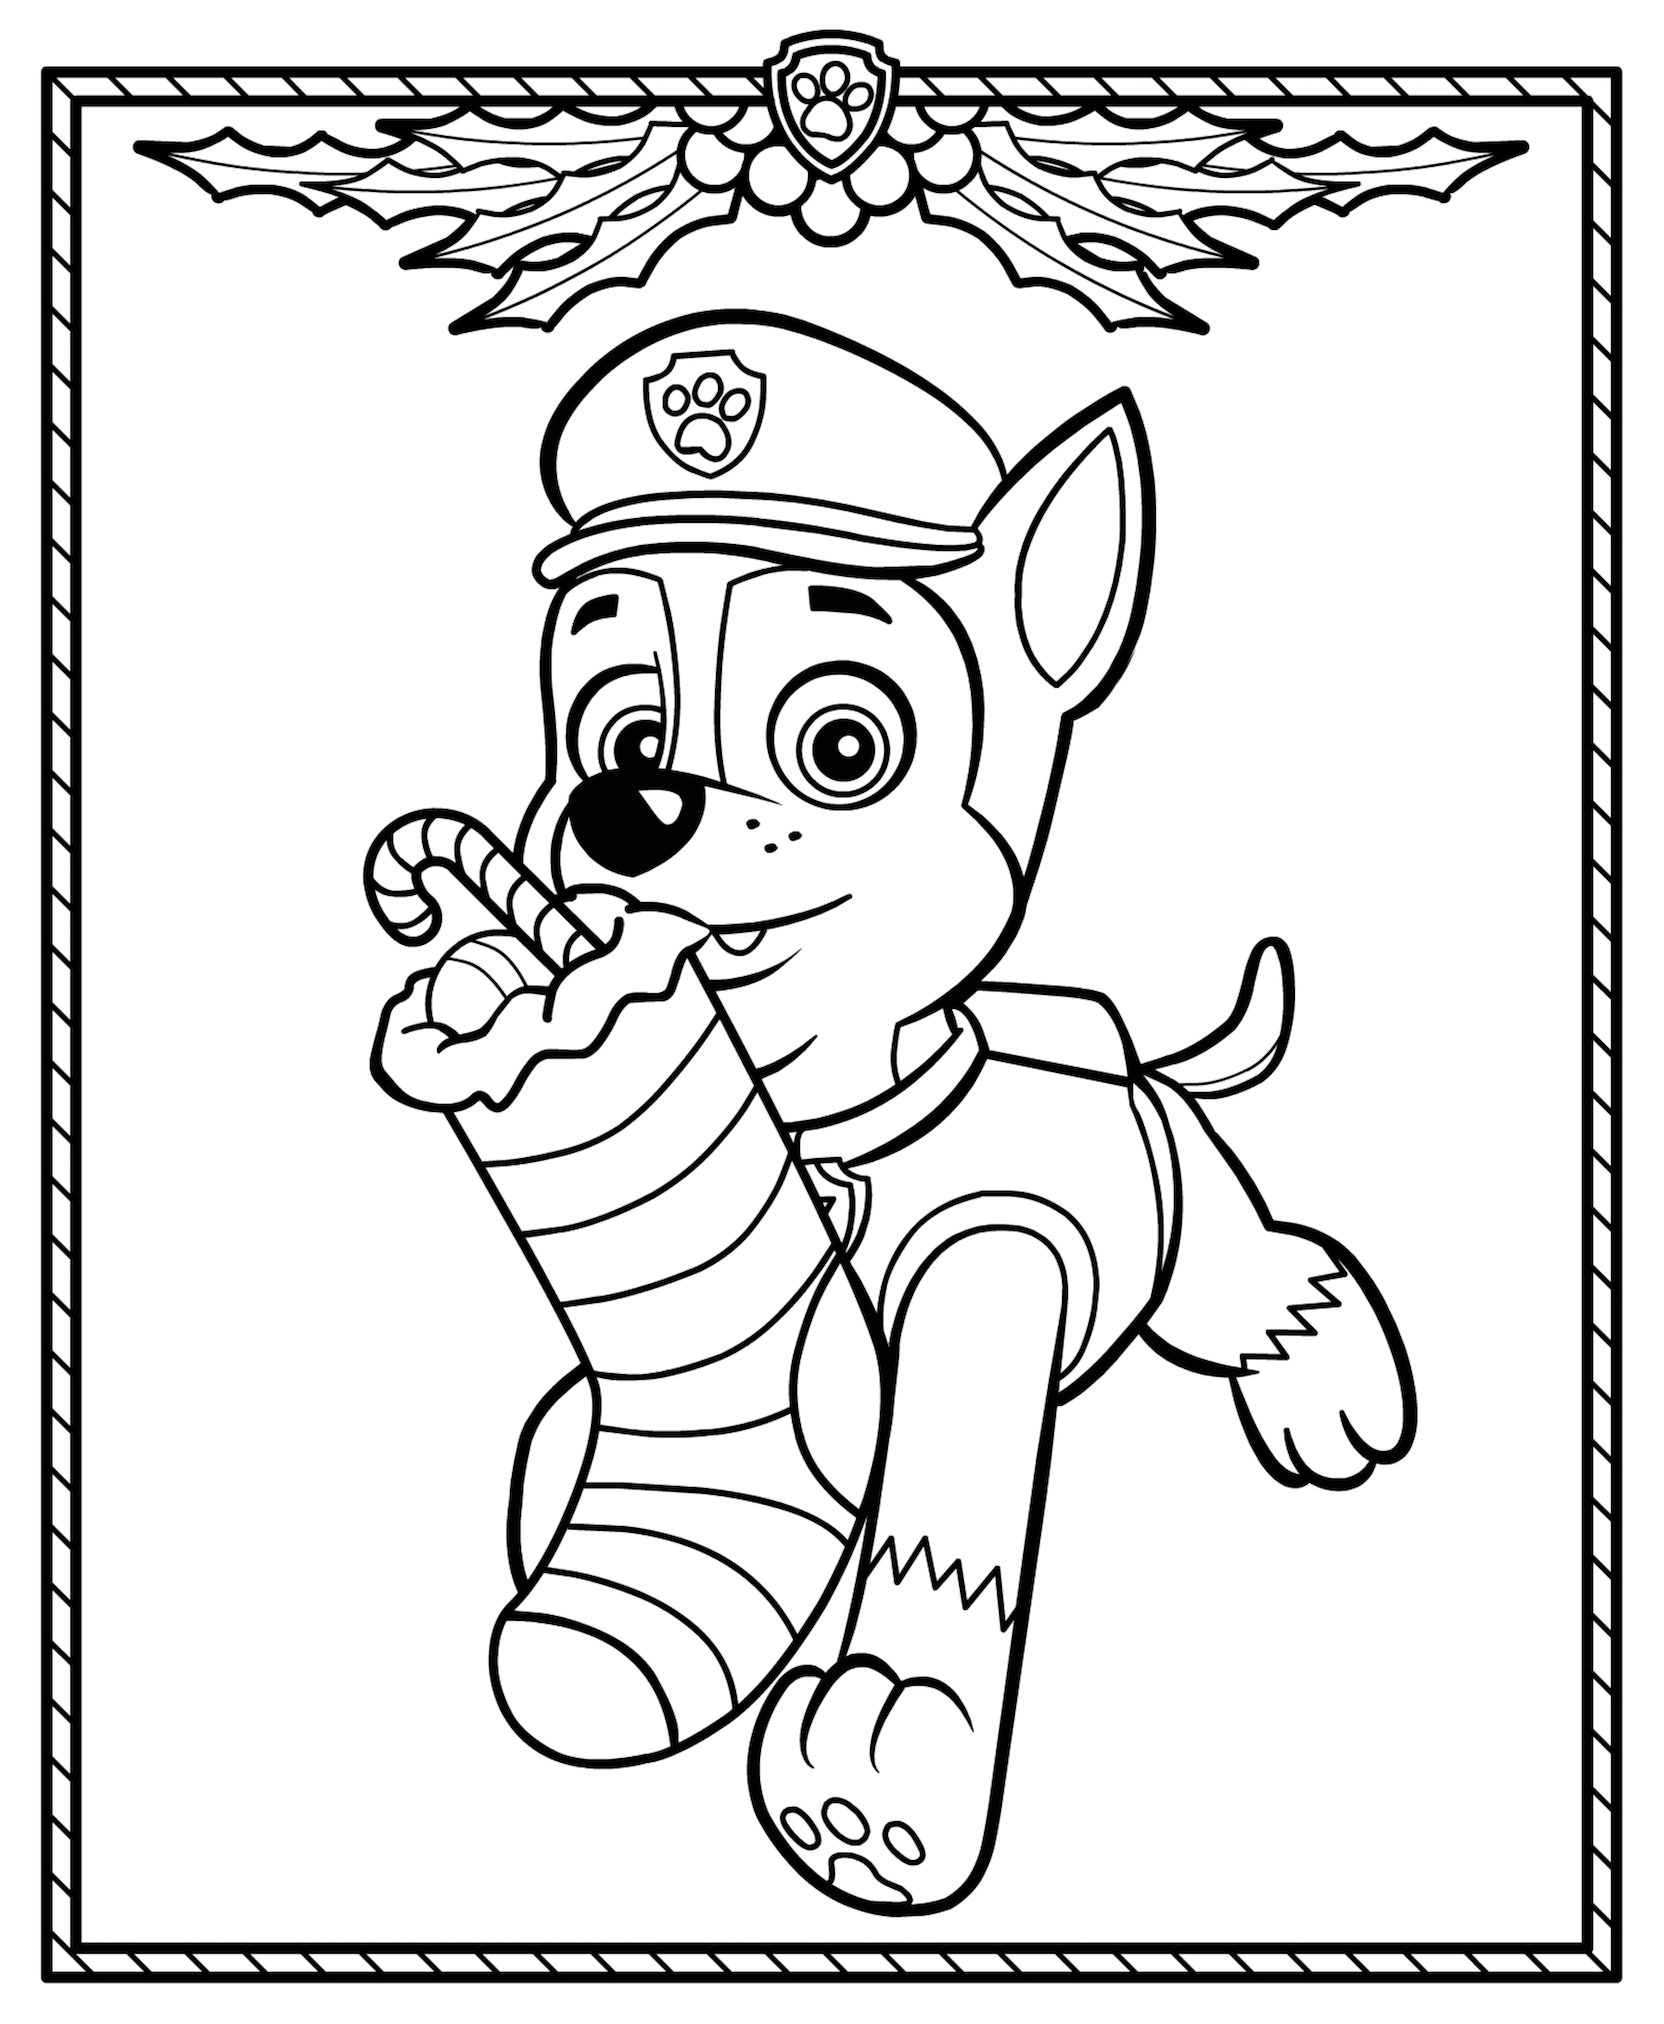 Christmas Coloring Pages Paw Patrol Coloring Paw Patrol Christmas Printable Christmas Coloring Pages